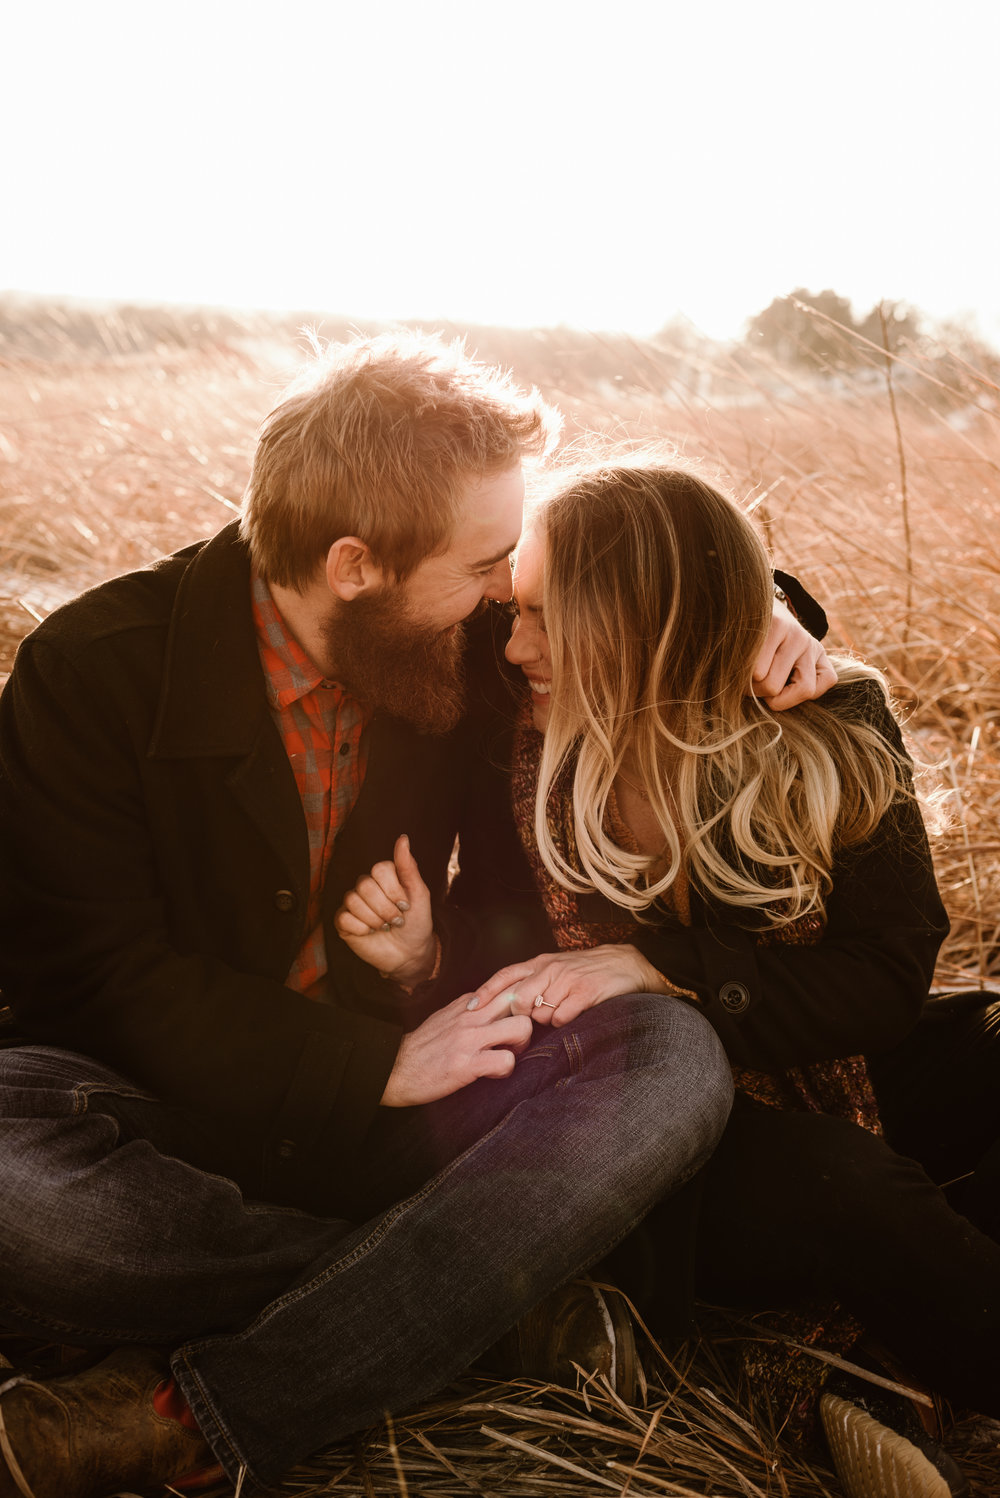 Nebraska Engagement Photographer Kaylie Sirek Photography 023.jpg